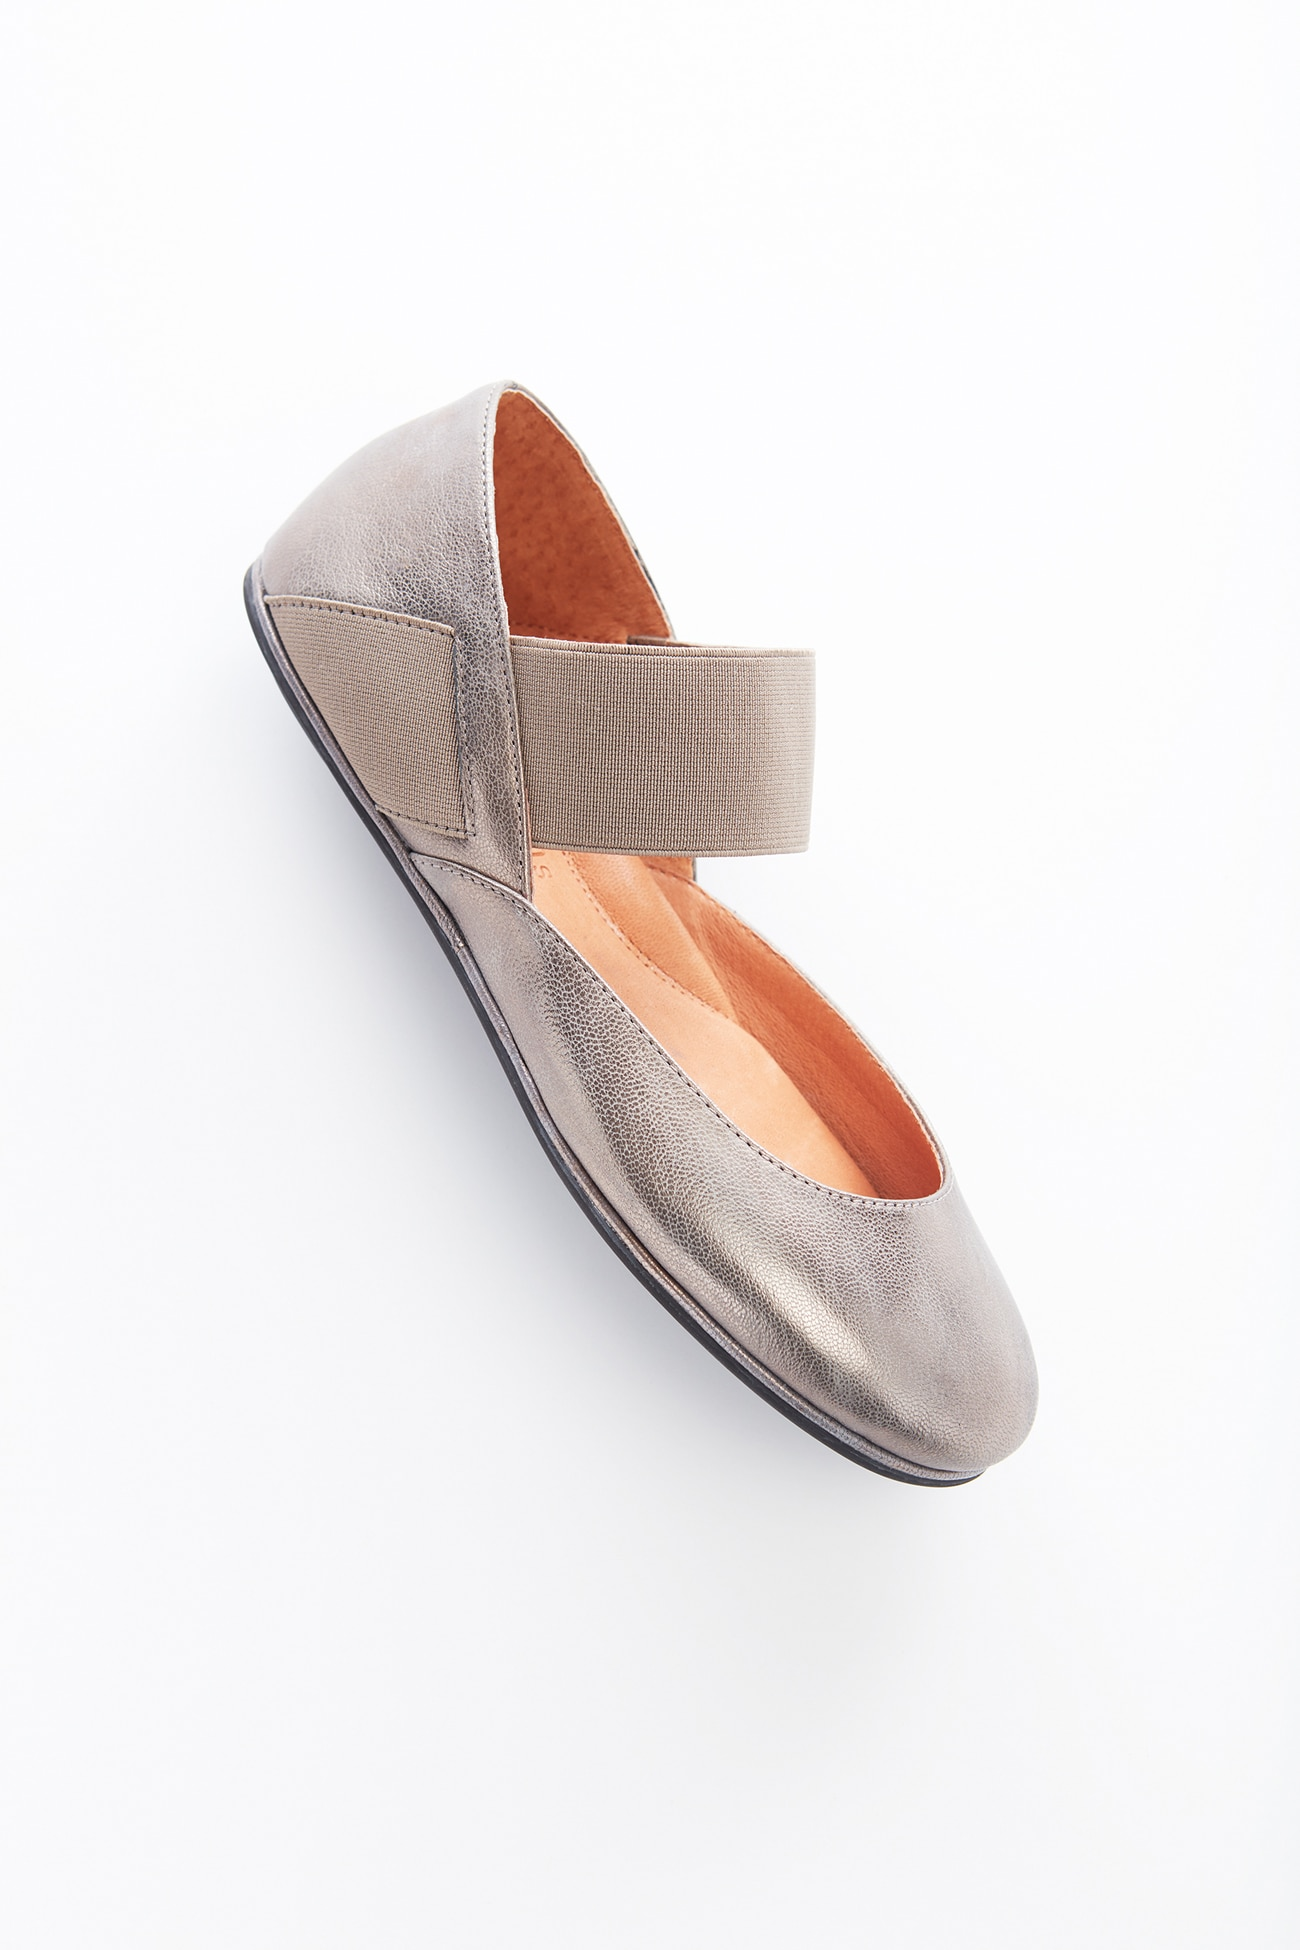 Gentle Souls® for J.Jill Bridget flats